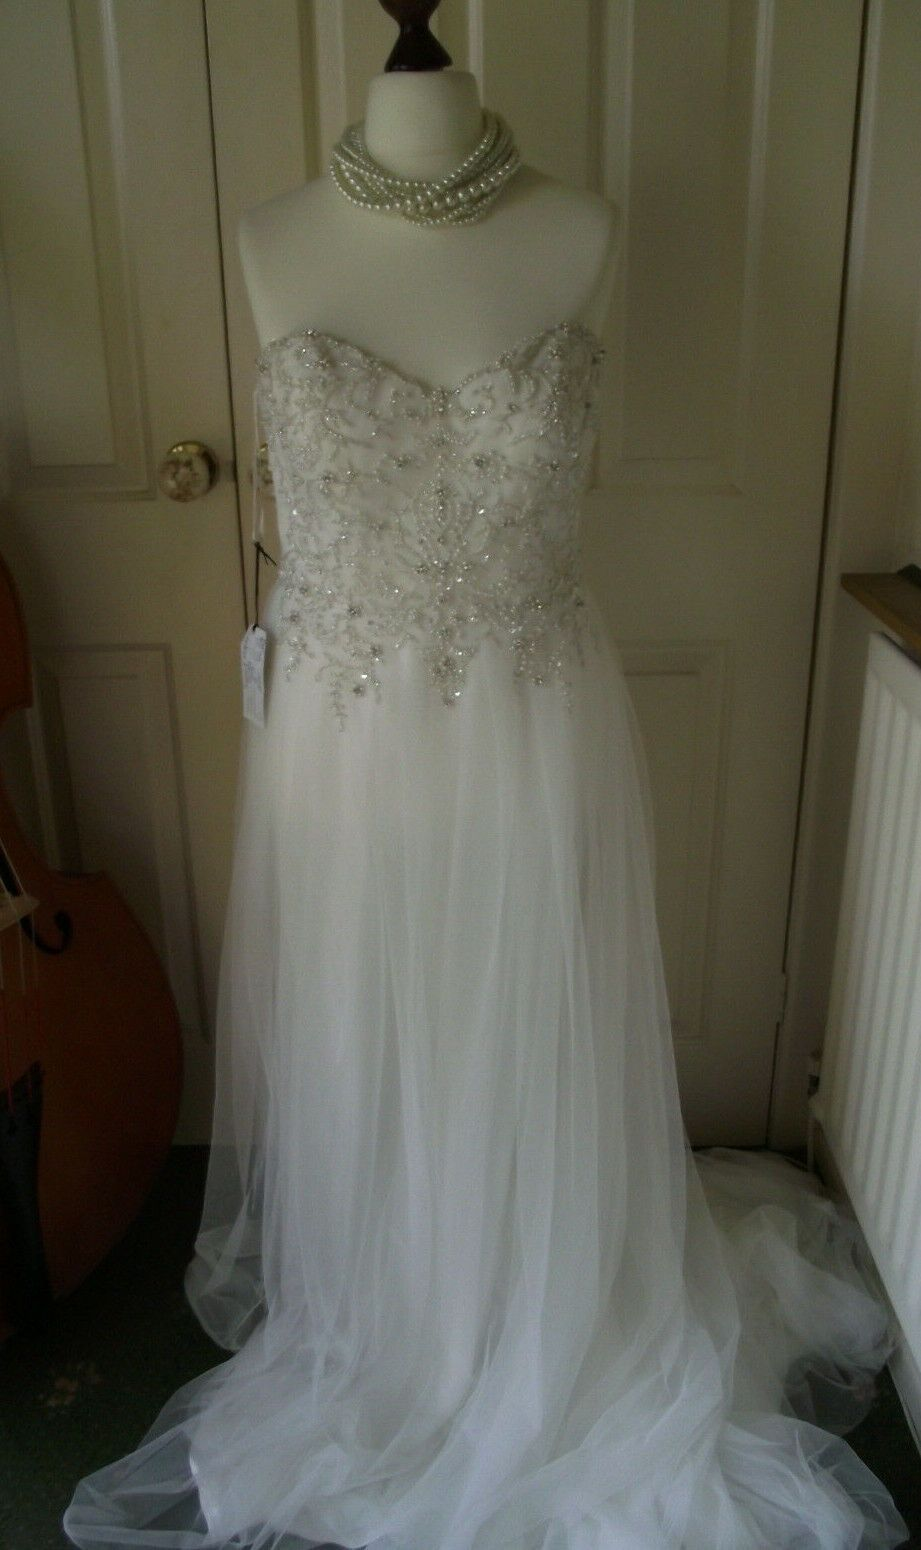 SOTTERO MIDGLEY WEDDING DRESS White BNWT originally £1300